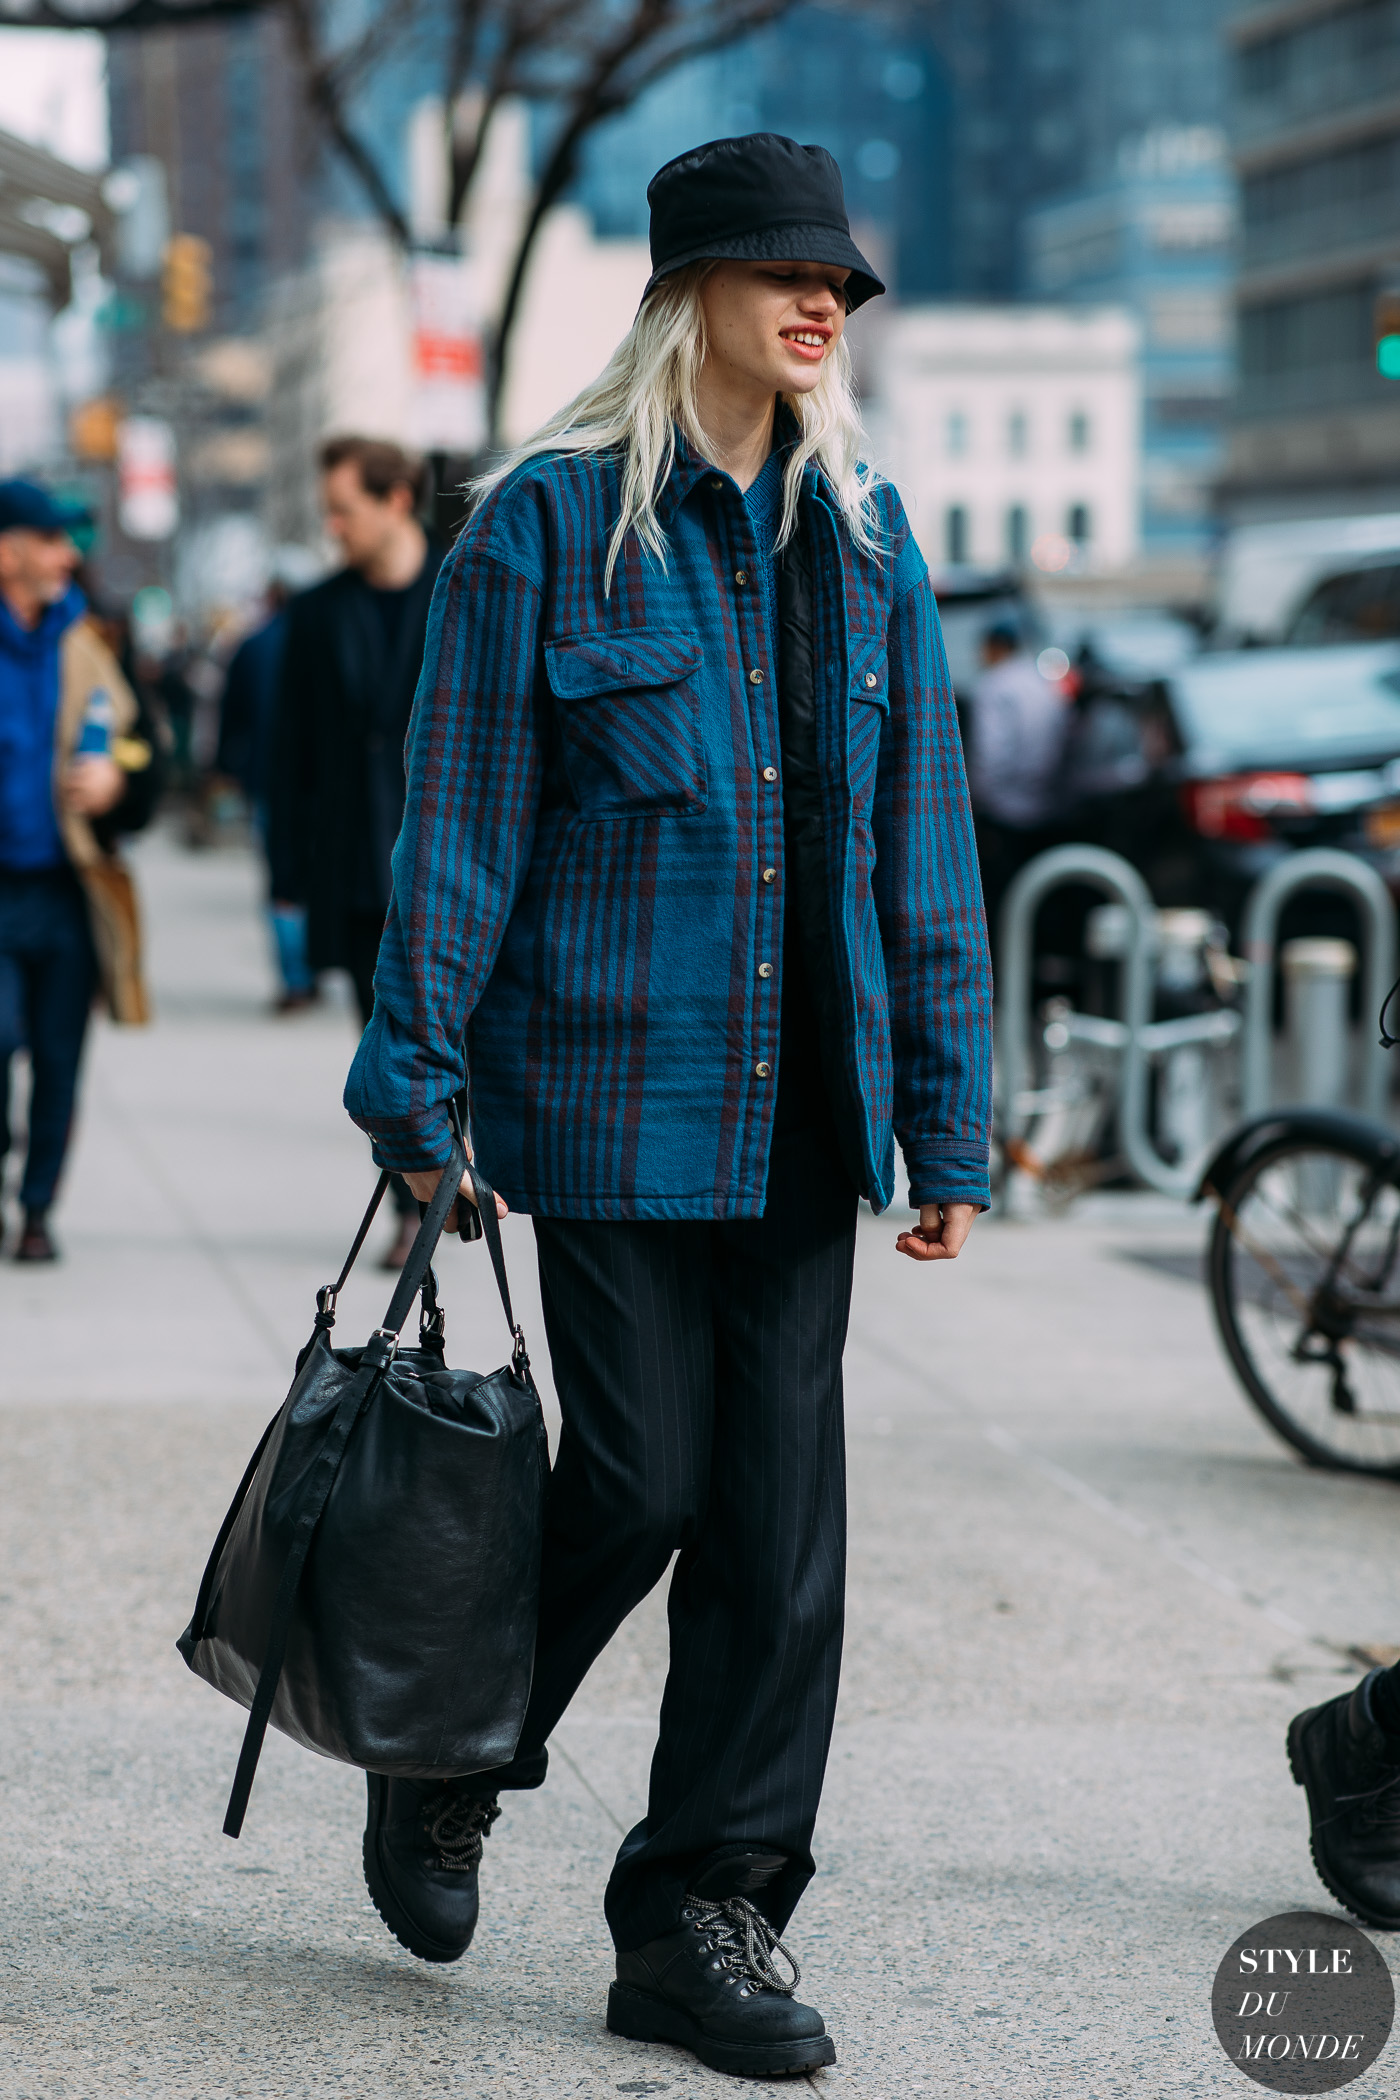 Stella Lucia by STYLEDUMONDE Street Style Fashion Photography NY FW18 20180210_48A4894